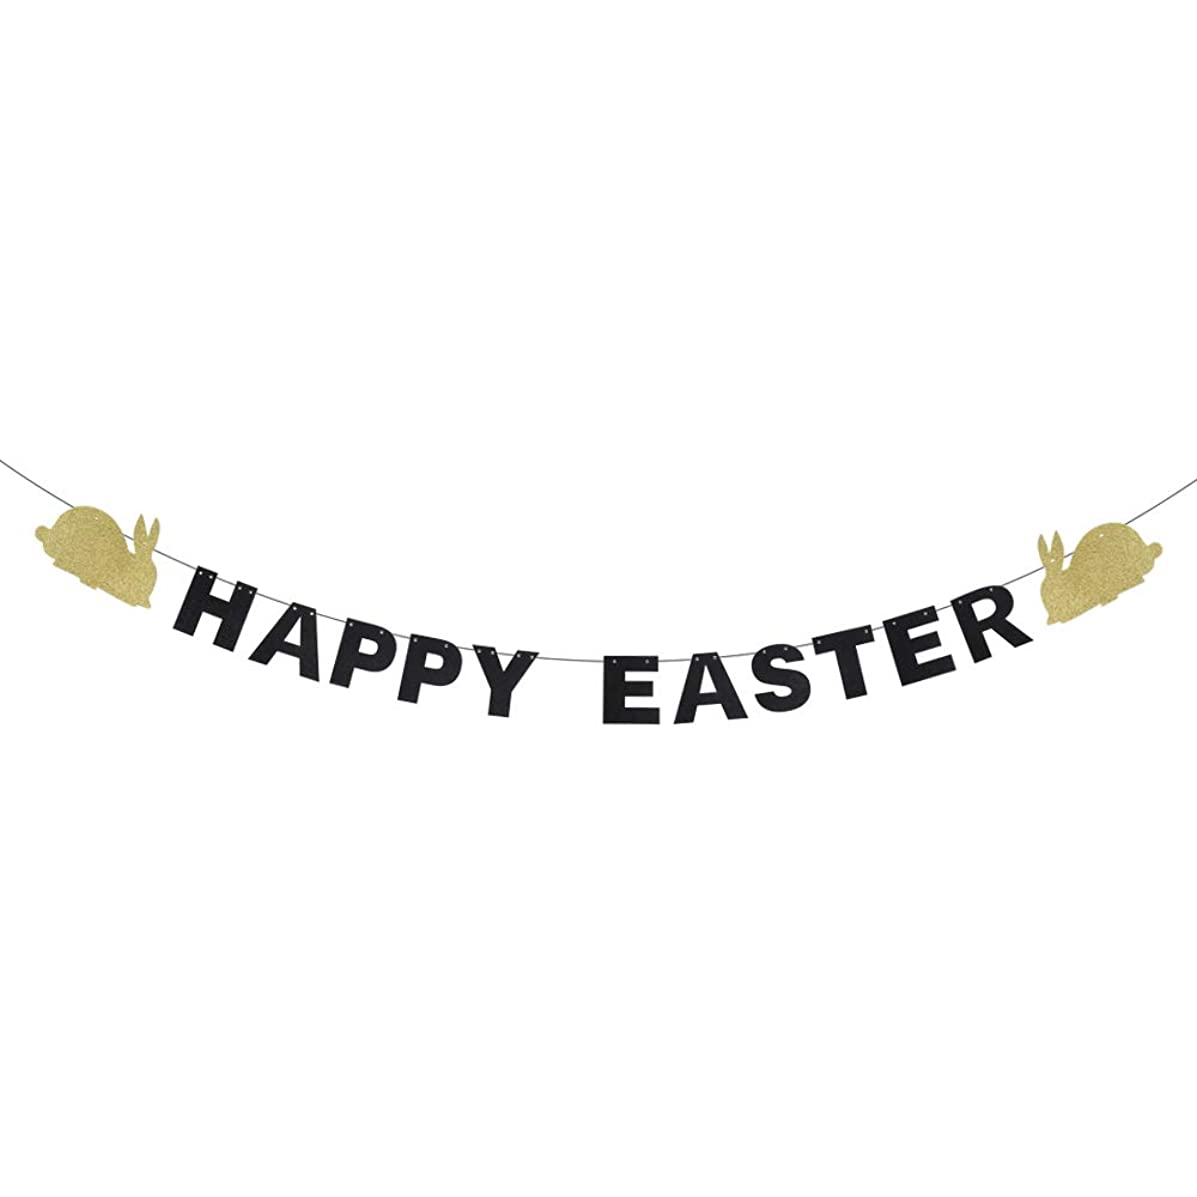 Happy Easter Banner - Garland Sign Rabbit Bunny Glitter Décor - Favors Easter Themes Ideas Backdrops Decorations - Celebration Latex-Easter Hanging House Suppiles